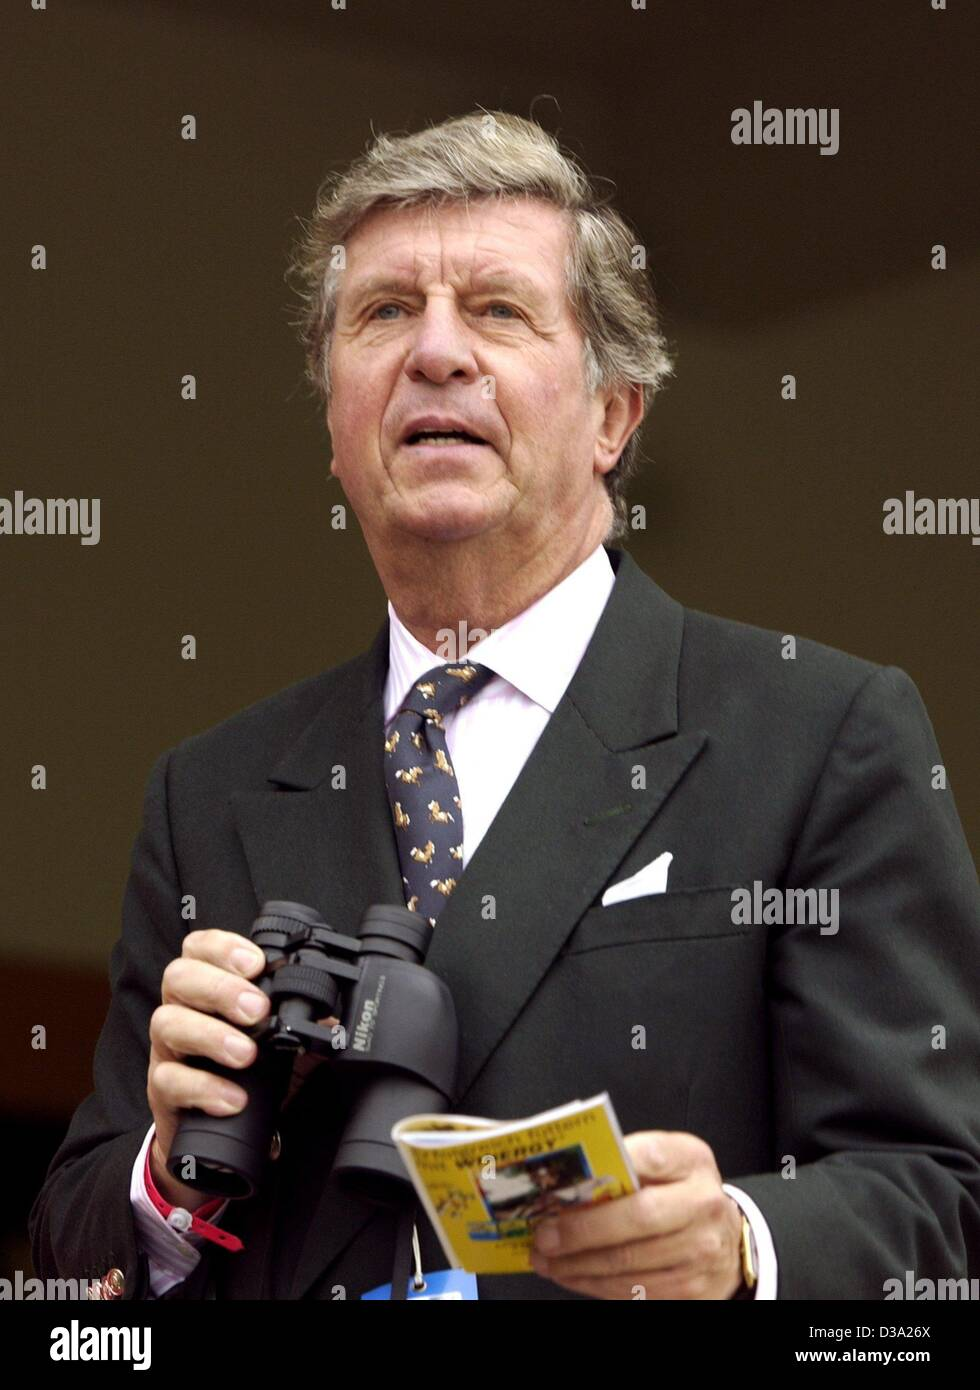 (dpa) - Albert Darboven, personally liable shareholder of the roasted coffee house J.J. Darbovern, looks at the Stock Photo